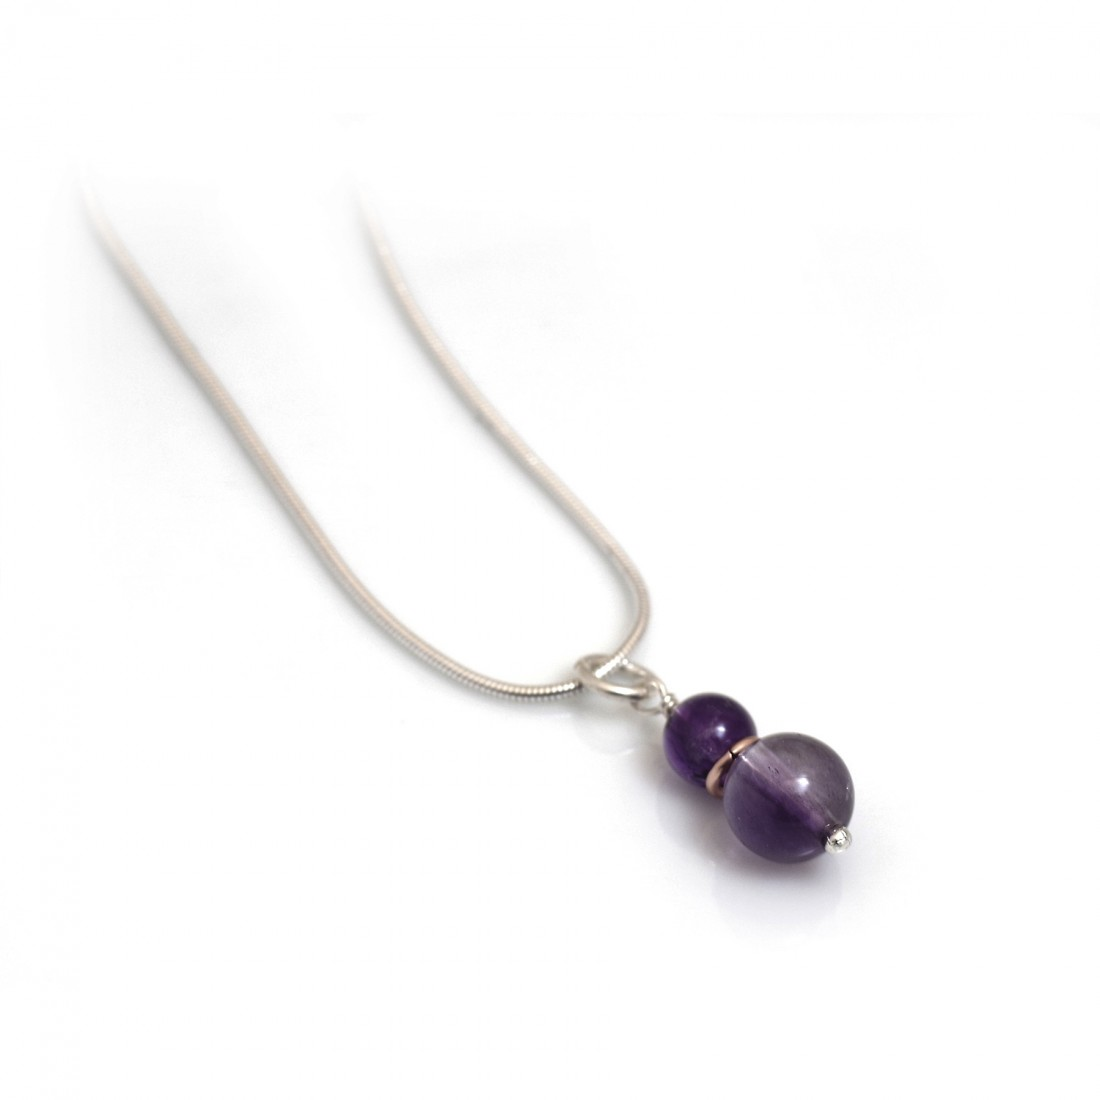 Hiho Handmade - Amethyst & Rose Gold Plate Pendant With Sterling Silver Snake Chain